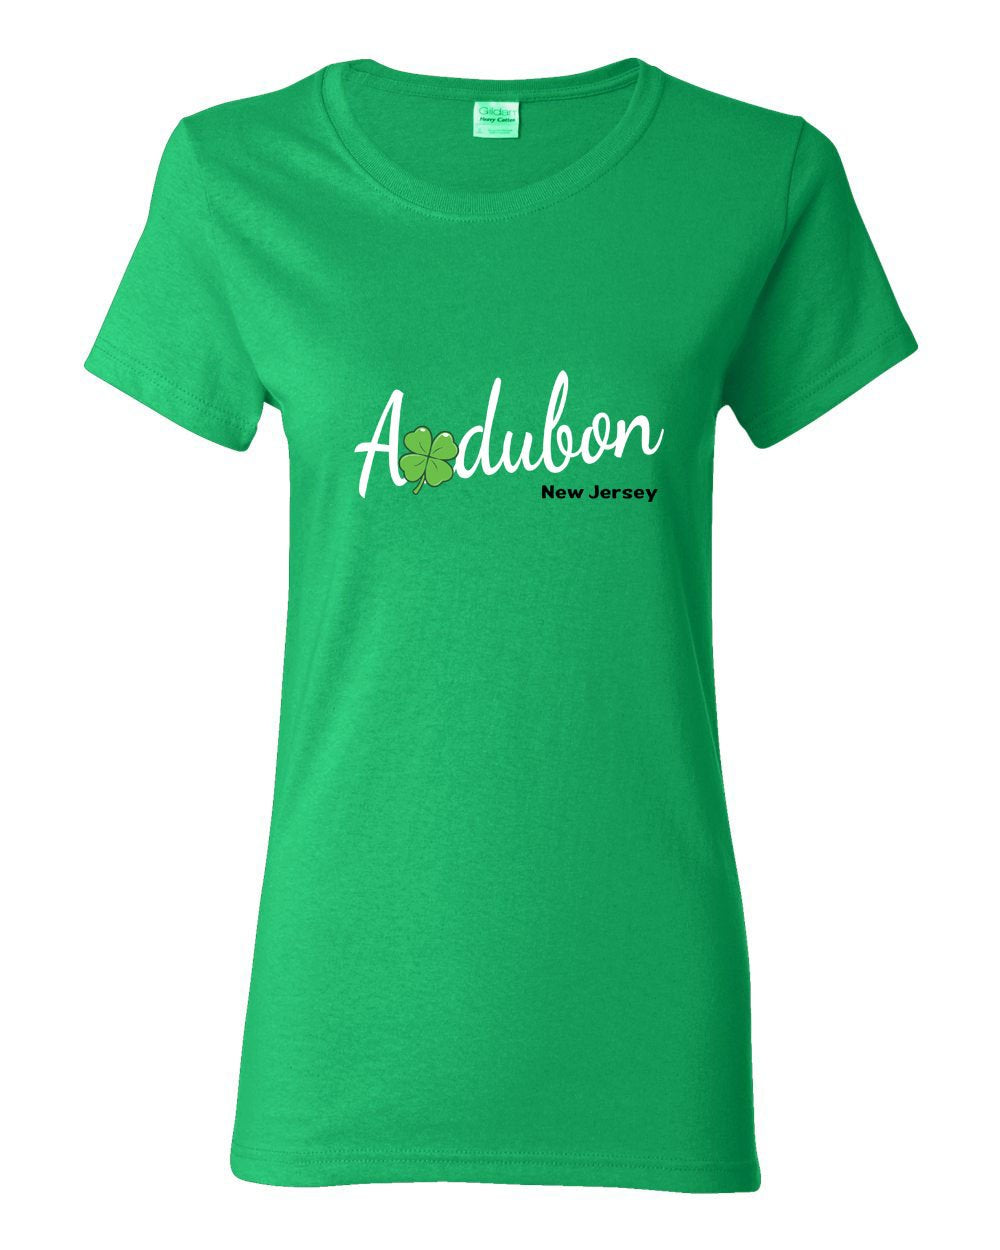 Irish Audubon LADIES Missy-Fit T-Shirt